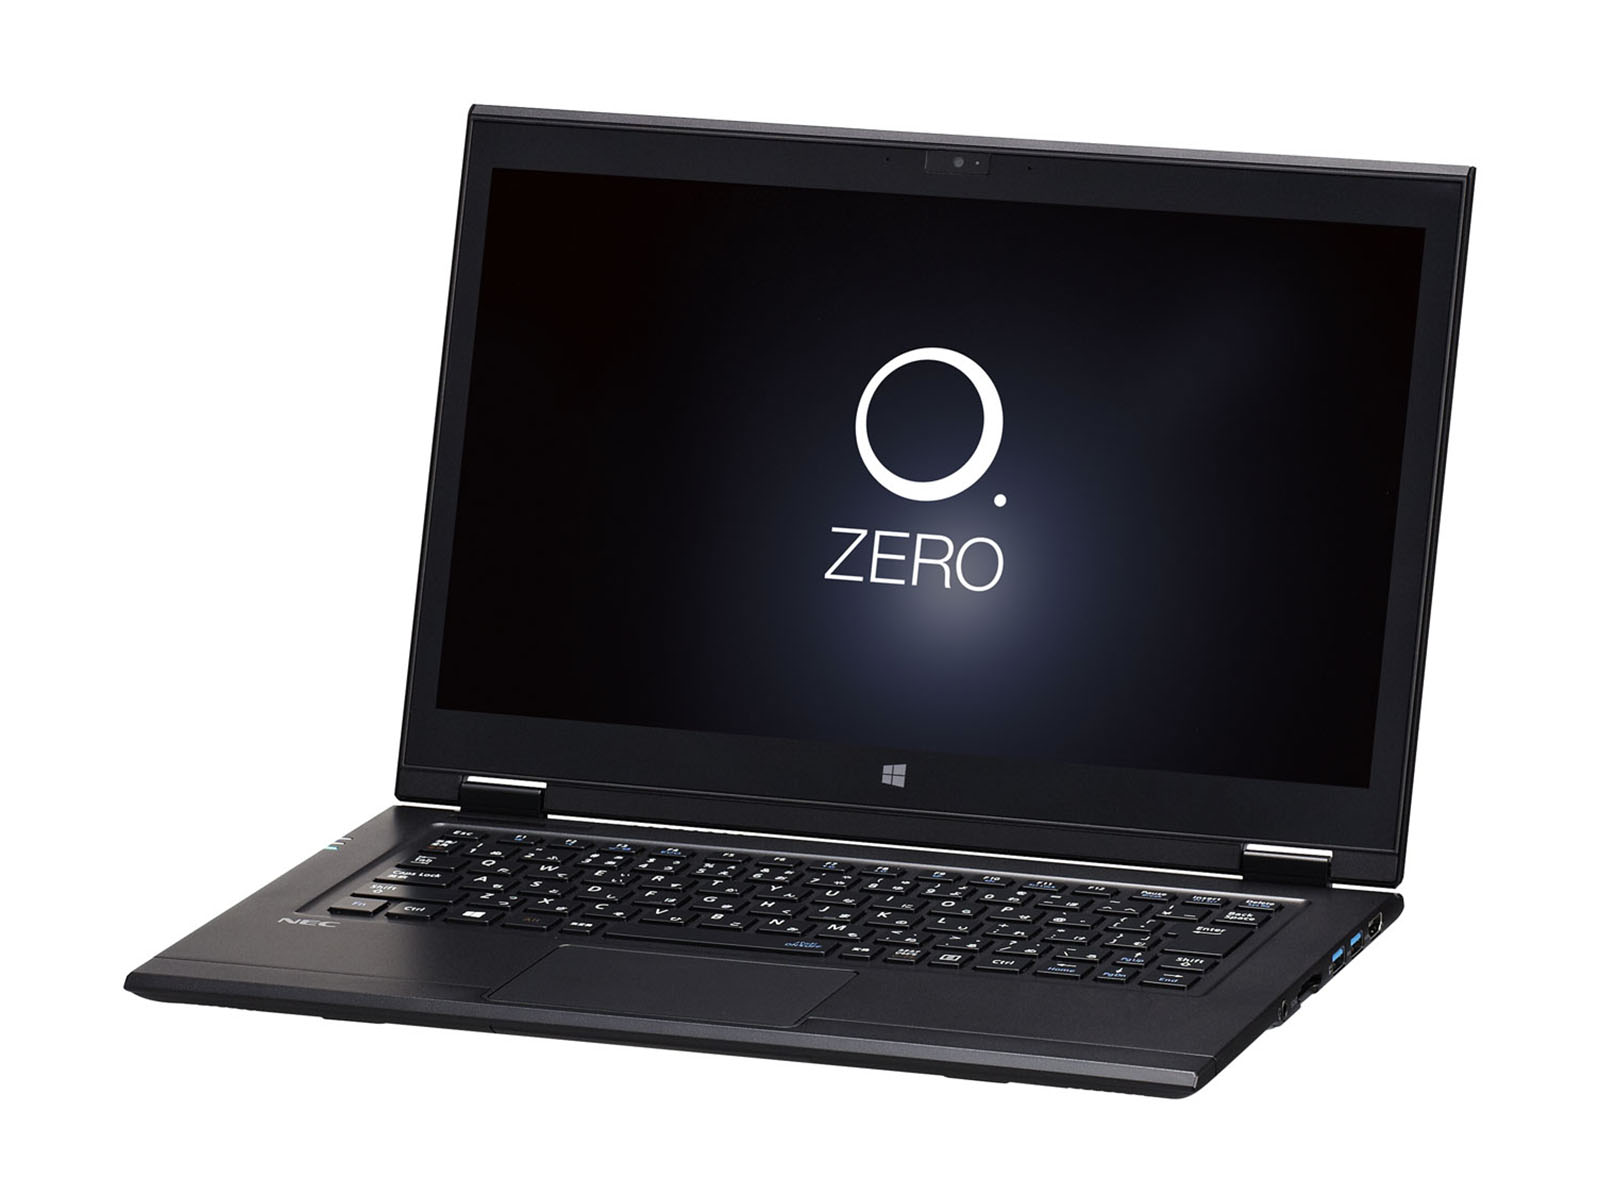 light-stylish-laptop-nec-lavie-hybrid-zero-hz750